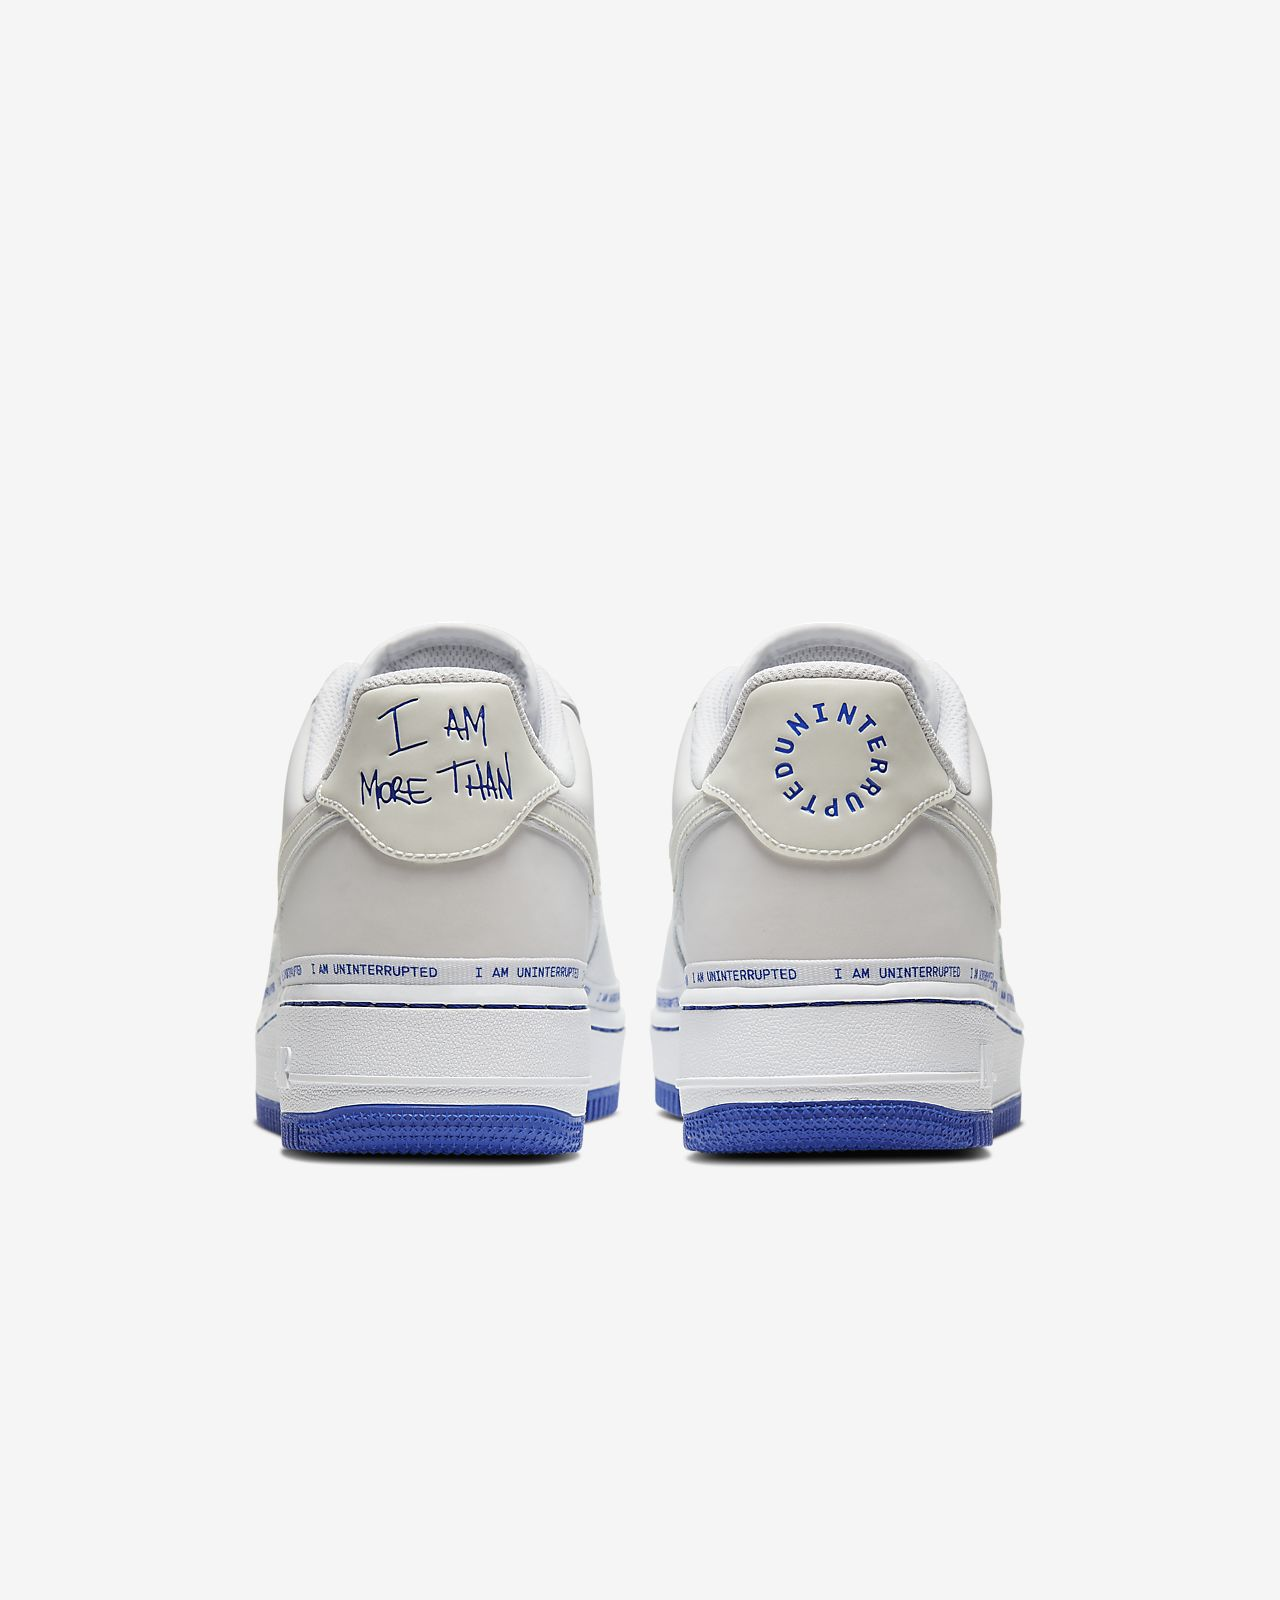 Nike Air Force 1 Low White Blue CQ0494 100 – Buy Best Price